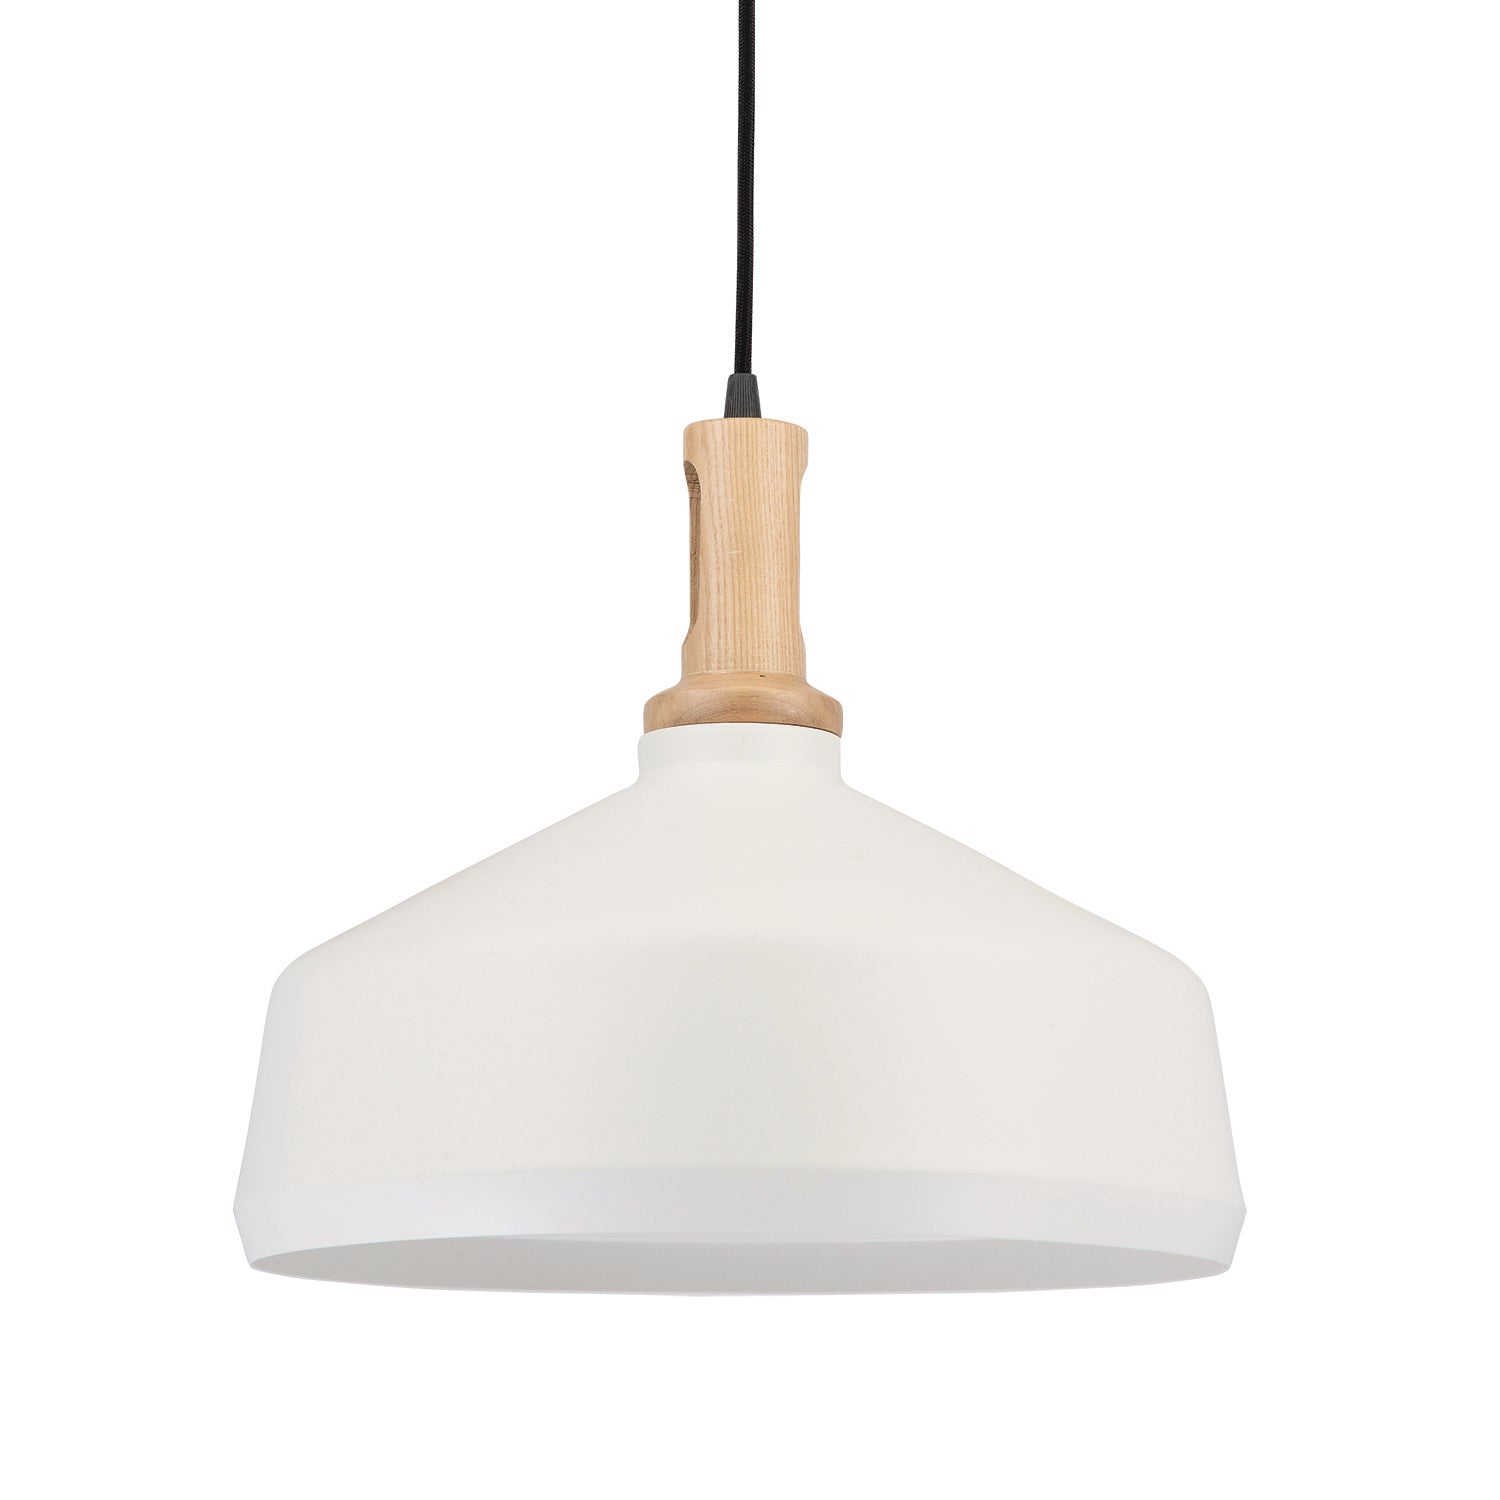 Pimlico Ceiling Light - David Malik & Son